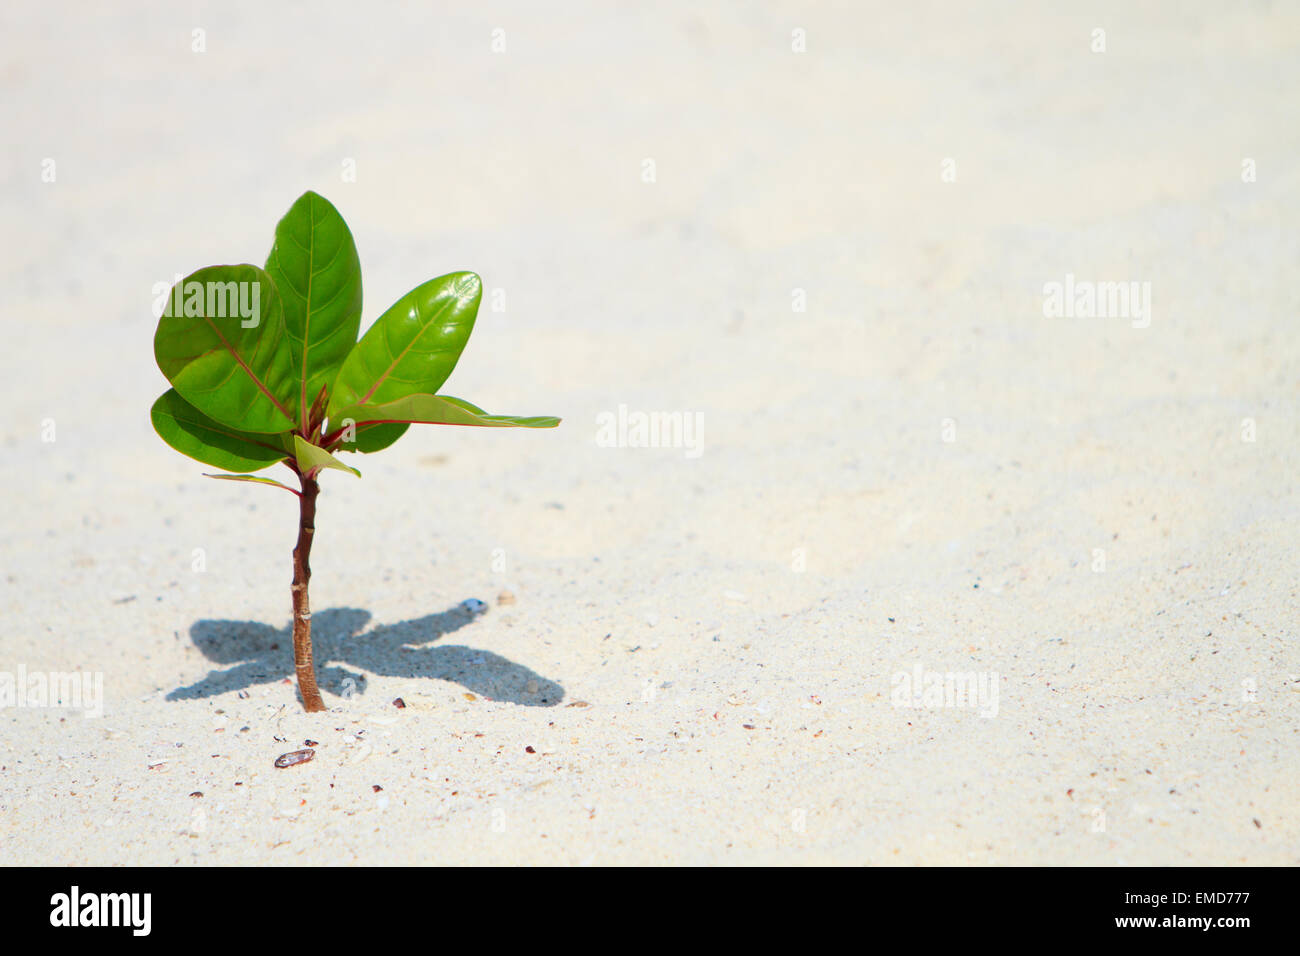 Young plant growing on beach - Stock Image